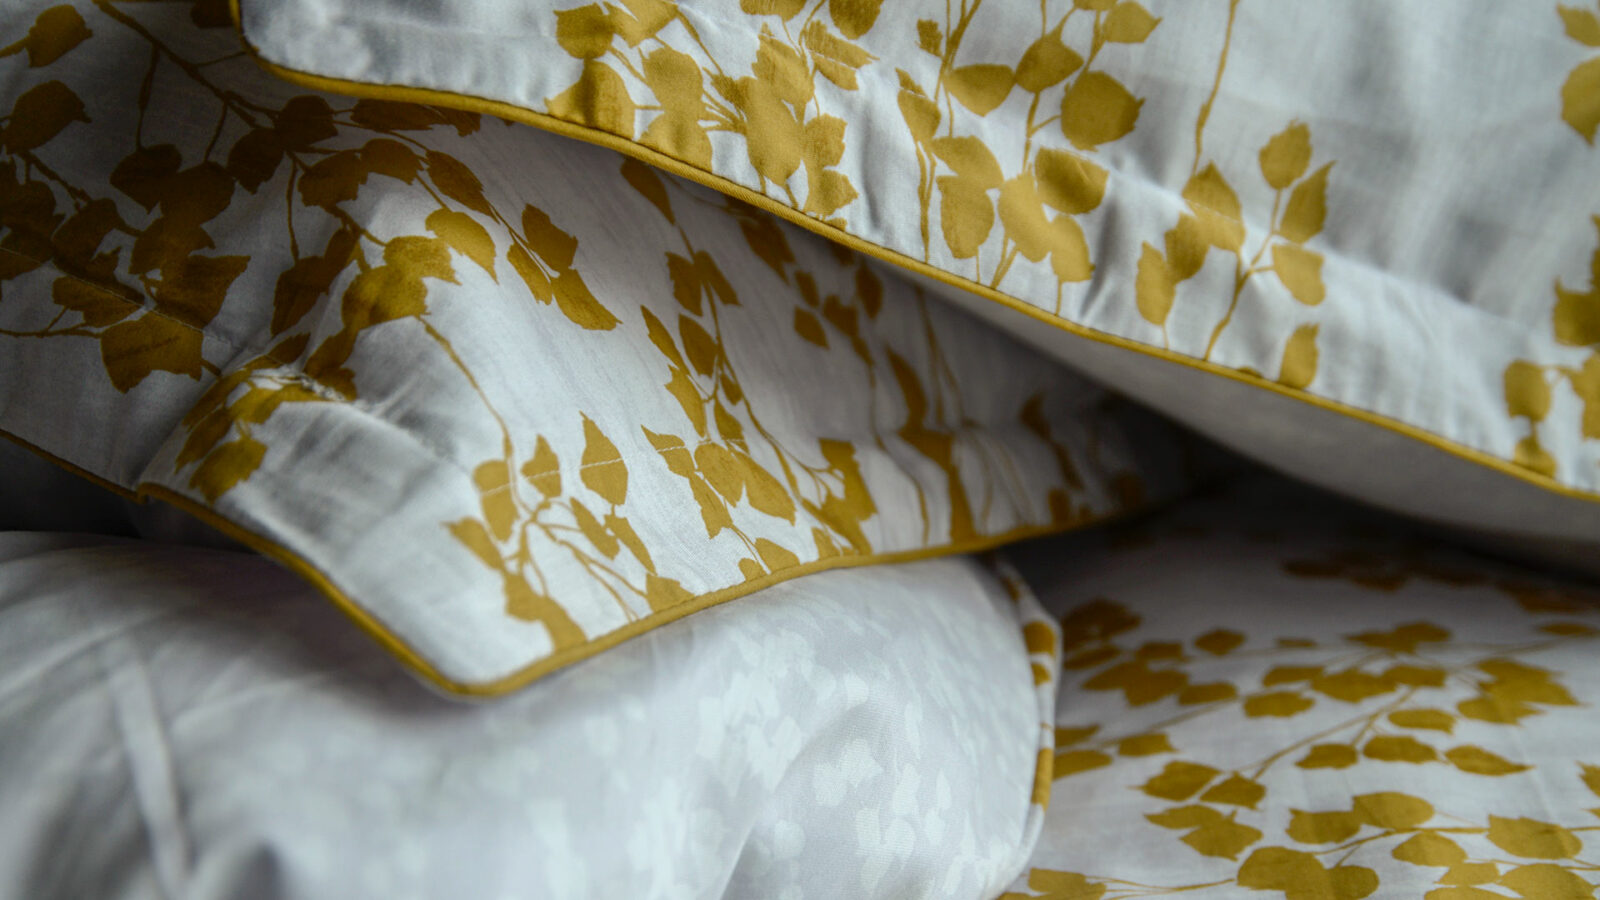 reversible leaf print duvet cover set in mustard yellow and white a close up view